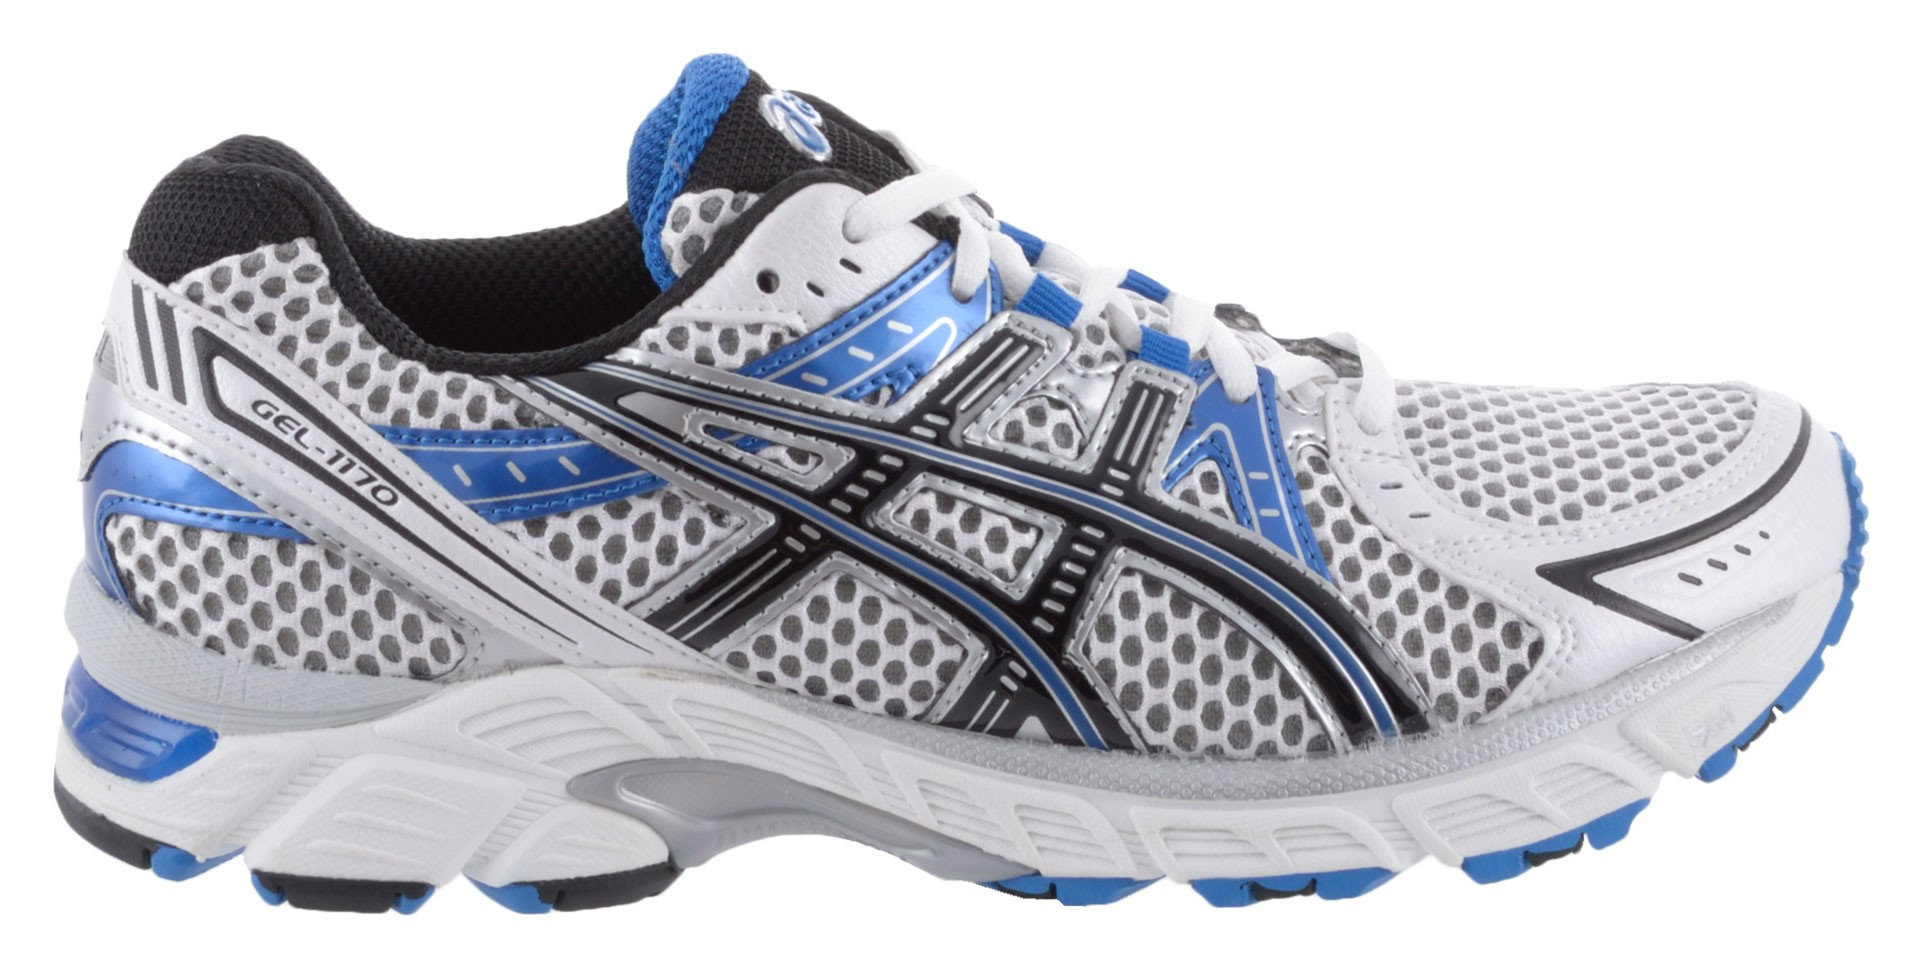 asics shoes with duomax